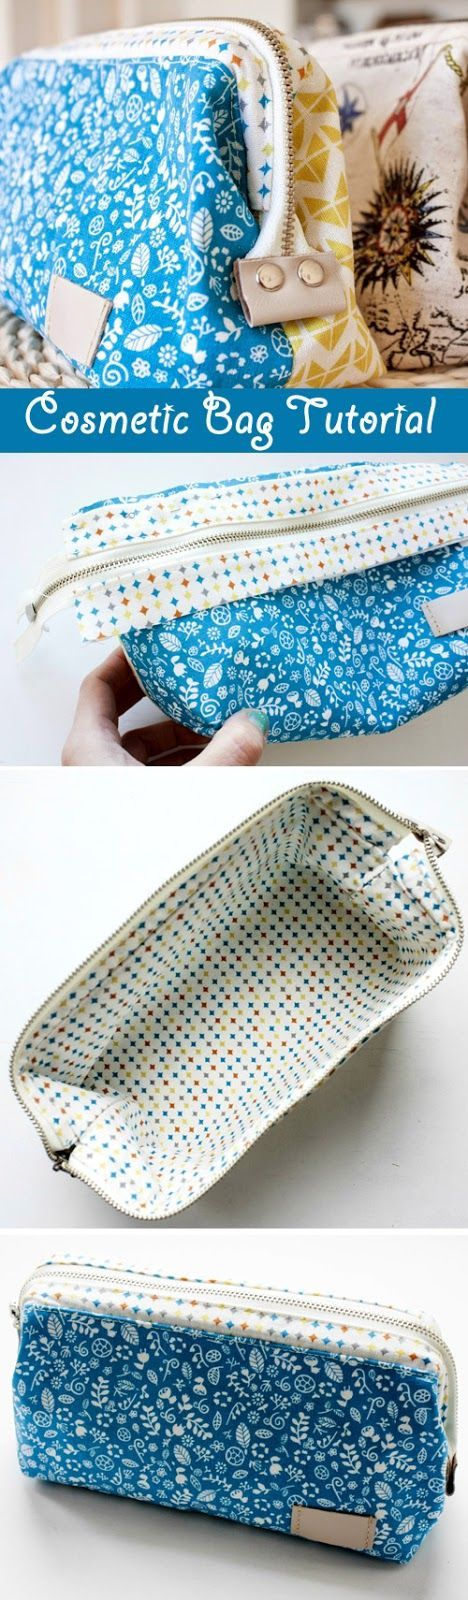 How to sew a cosmetics bag with a frame. Tutorial in pictures. http://www.handmadiya.com/2015/09/cosmetic-bag-with-frame-tutorial.html